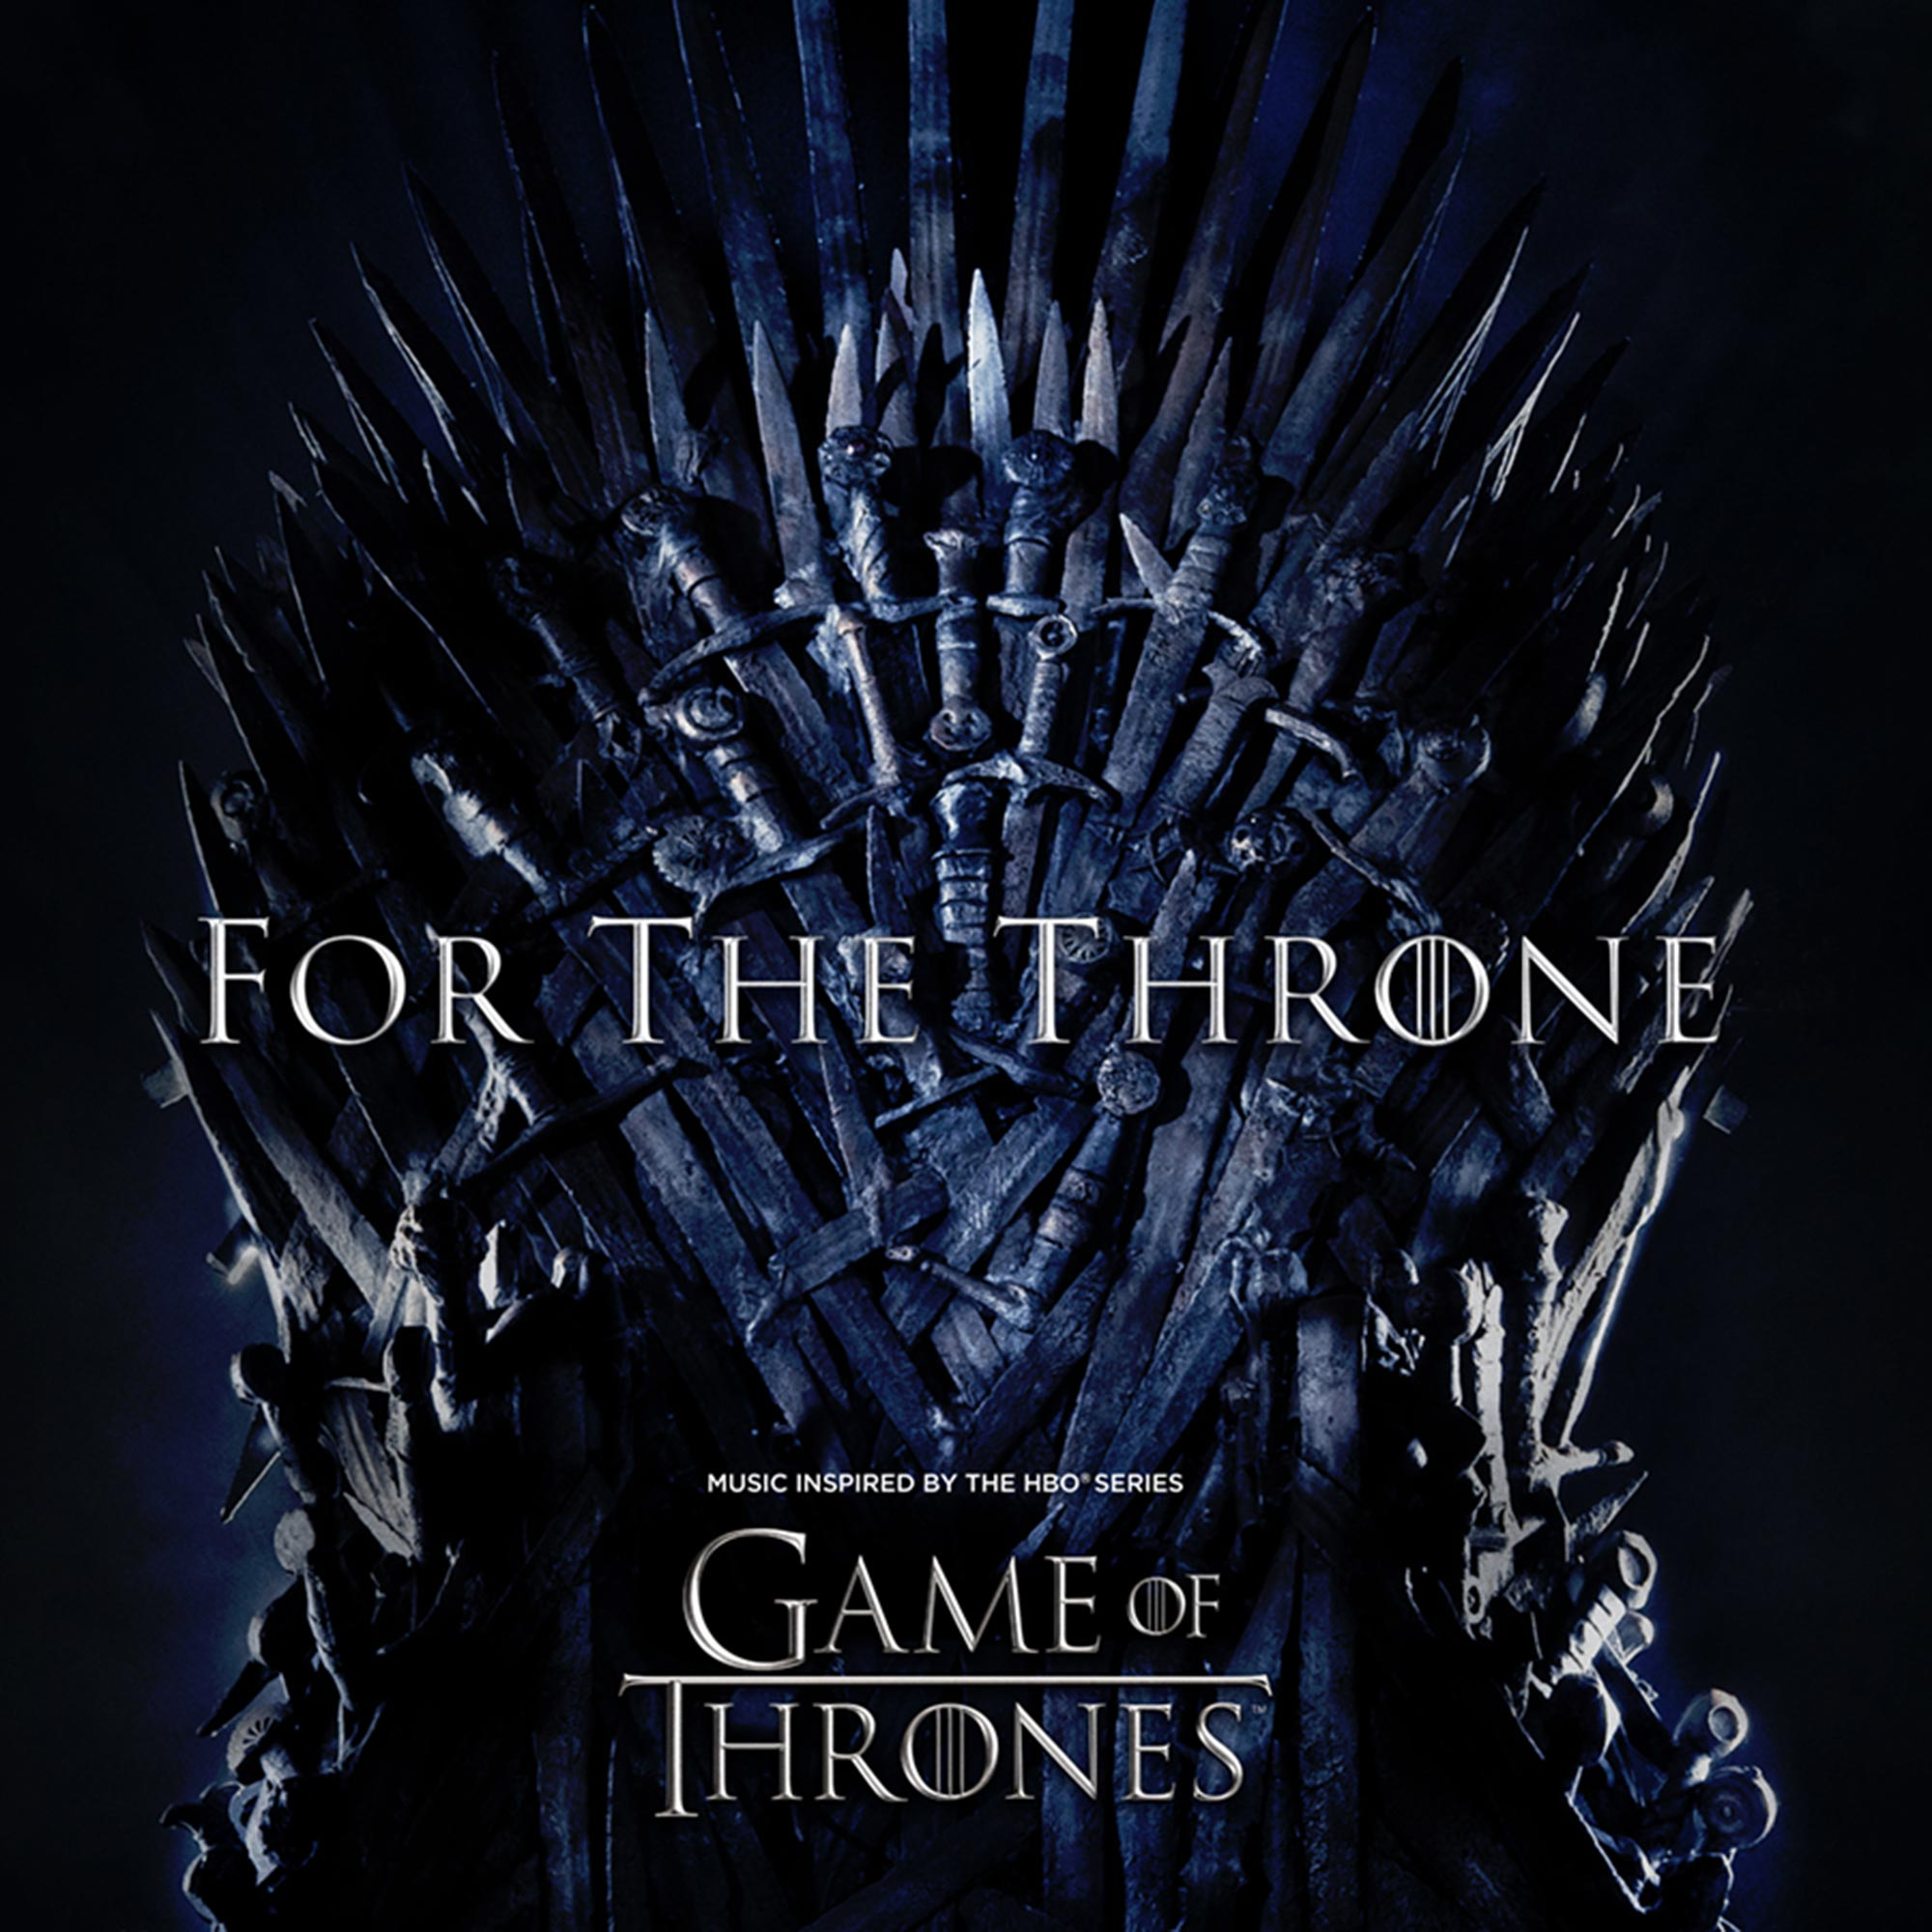 Game Of Thrones Soundtrack For The Throne Lyrics And References Ew Com